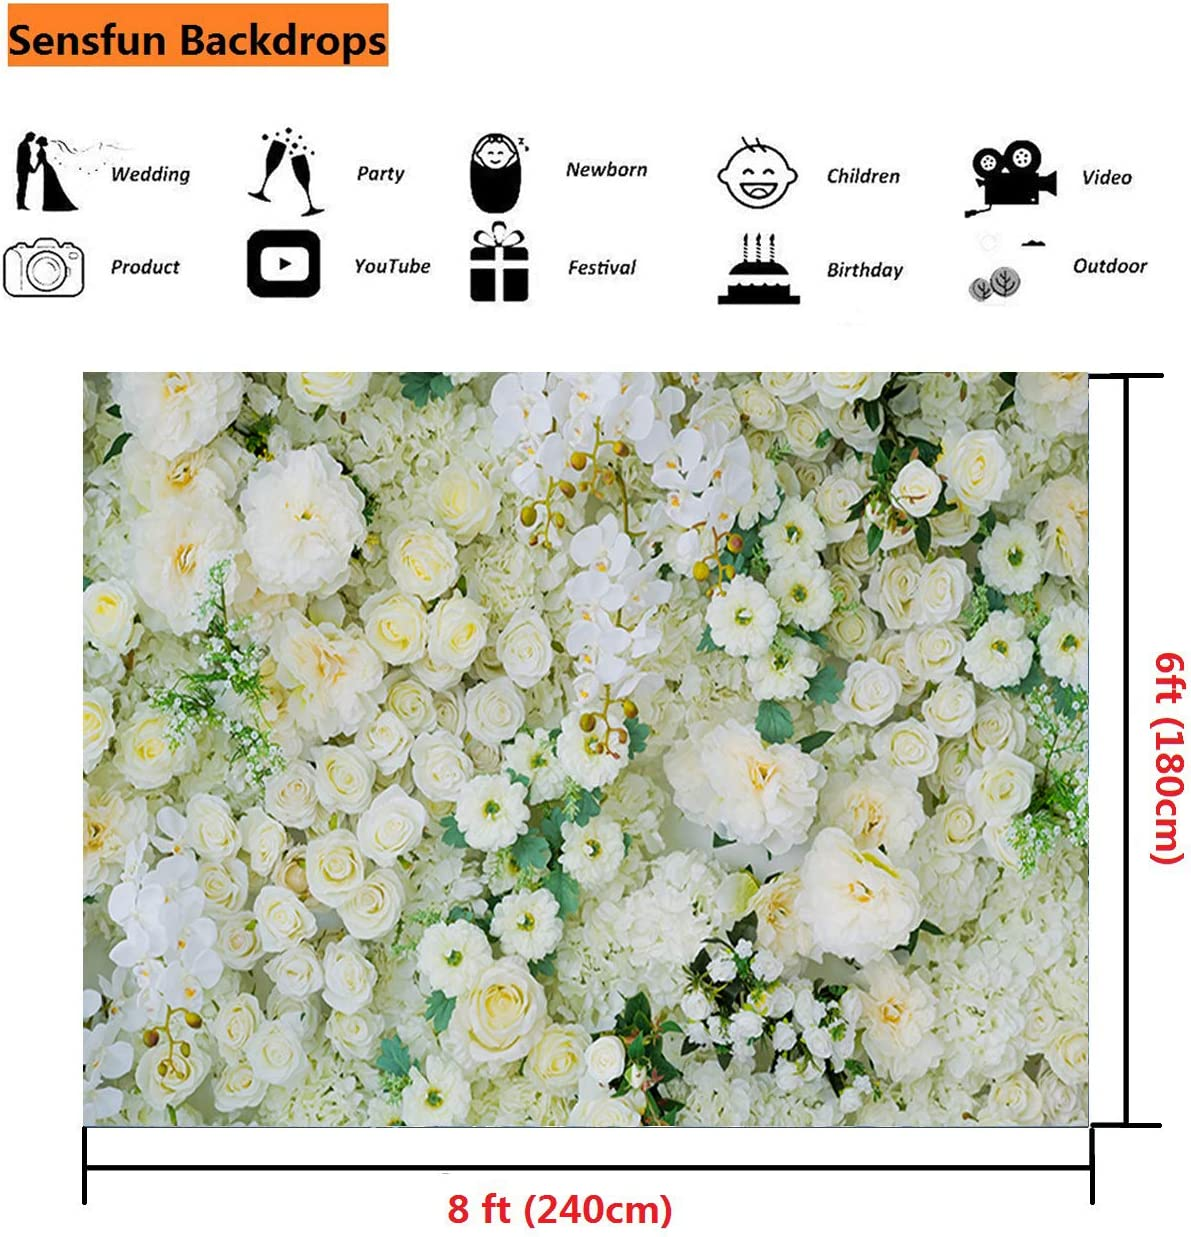 XY021 Sensfun 8x6ft Valentines Day Photo Backdrop Wedding Backdrops Pink Red White Rose Flowers Wall Photography Background for Baby Shower Girl Children Artistic Portrait Photobooth Studio Props